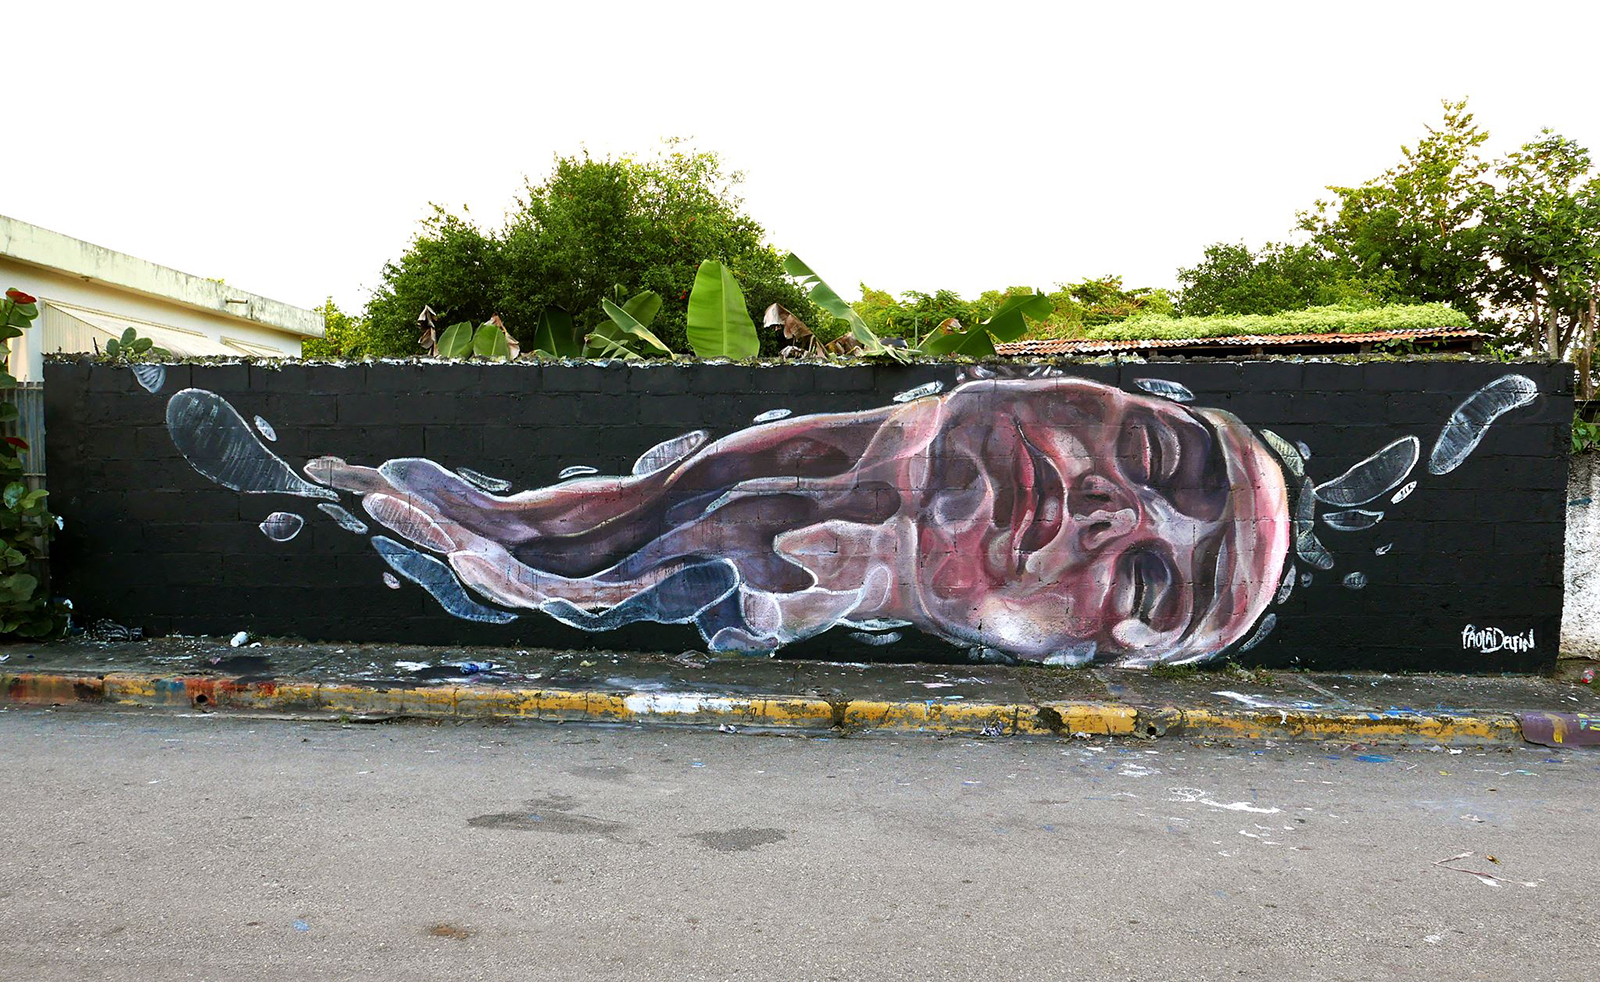 paola-delfin-new-mural-for-artesano-project-01